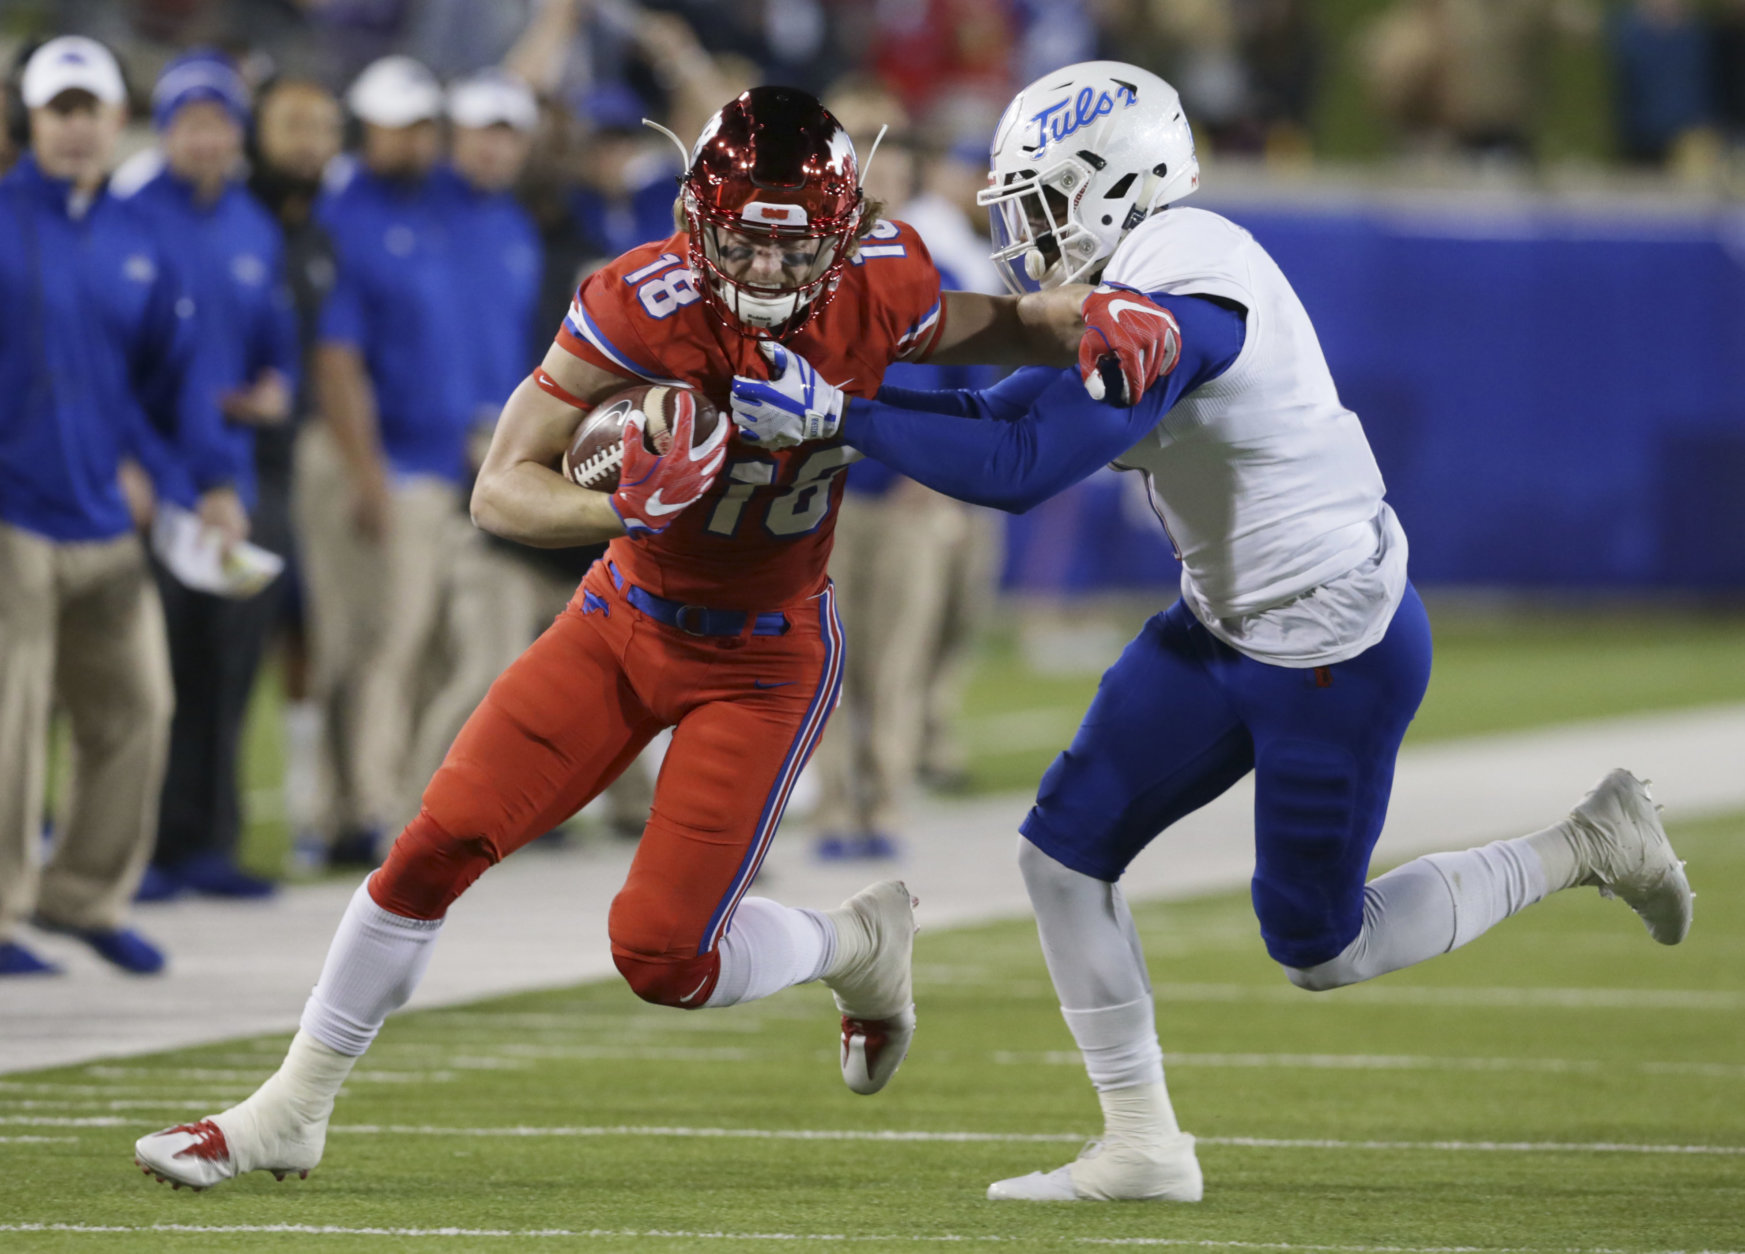 SMU wide receiver Trey Quinn (18) runs after the reception against Tulsa during the first half of an NCAA college football game in Dallas, Friday, Oct. 27, 2017. (AP Photo/LM Otero)